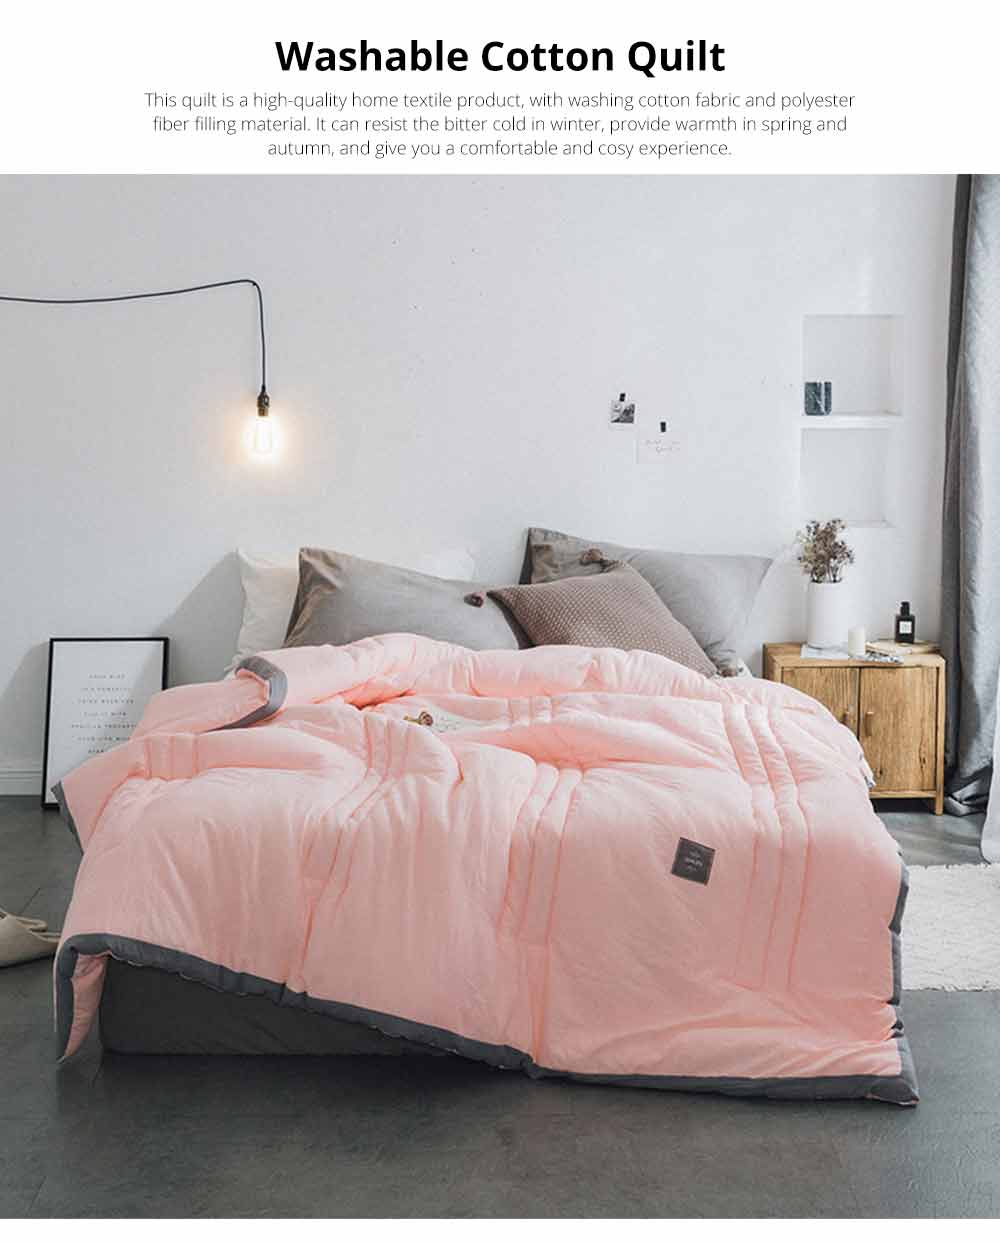 Warm Quilt For Winter, Washable Cotton Quilt Thickened, Single Double King Size Bed Sheet Duvet Cover 7